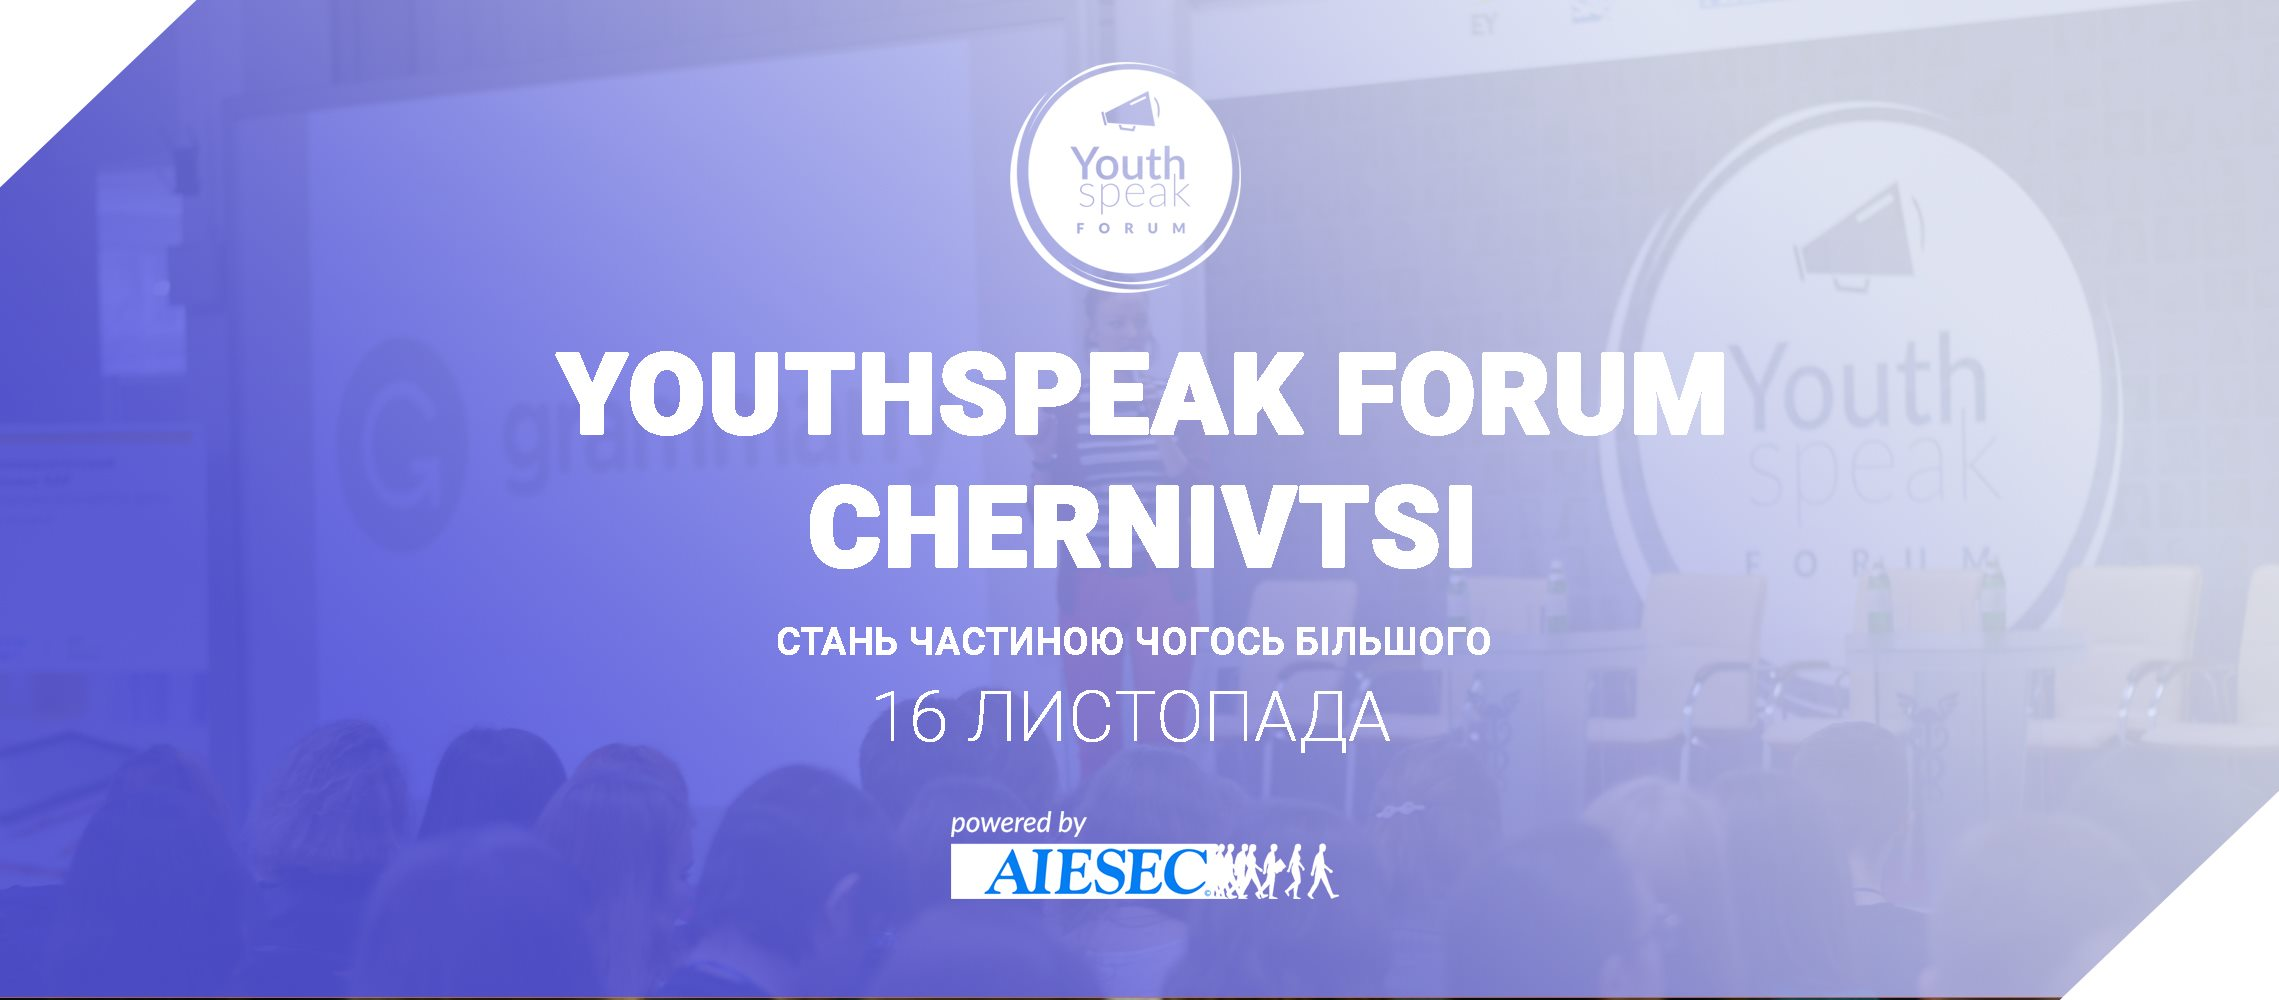 YouthSpeak Forum Chernivtsi